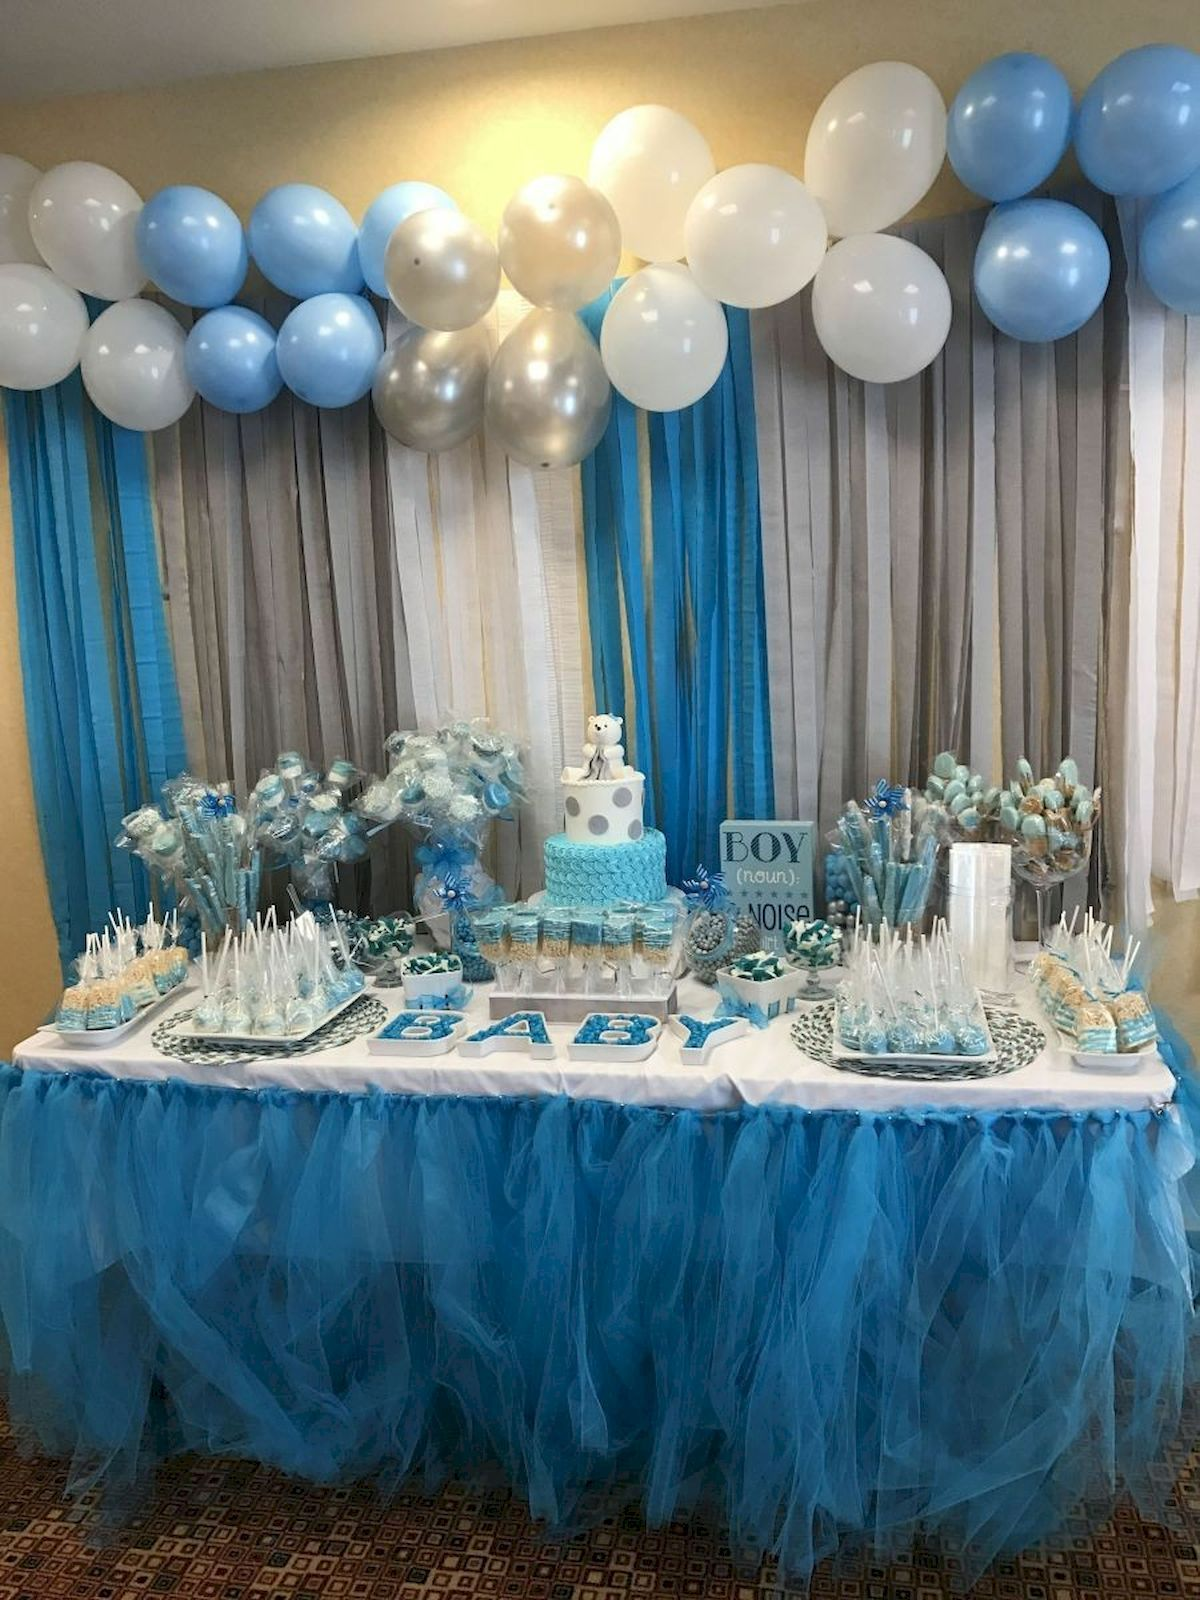 Adorable 50 Awesome Baby Shower Themes And Decorating Ideas For Boy Source Https Rontsen Co Baby Shower Menu Baby Shower Decorations Decoracion Baby Shower